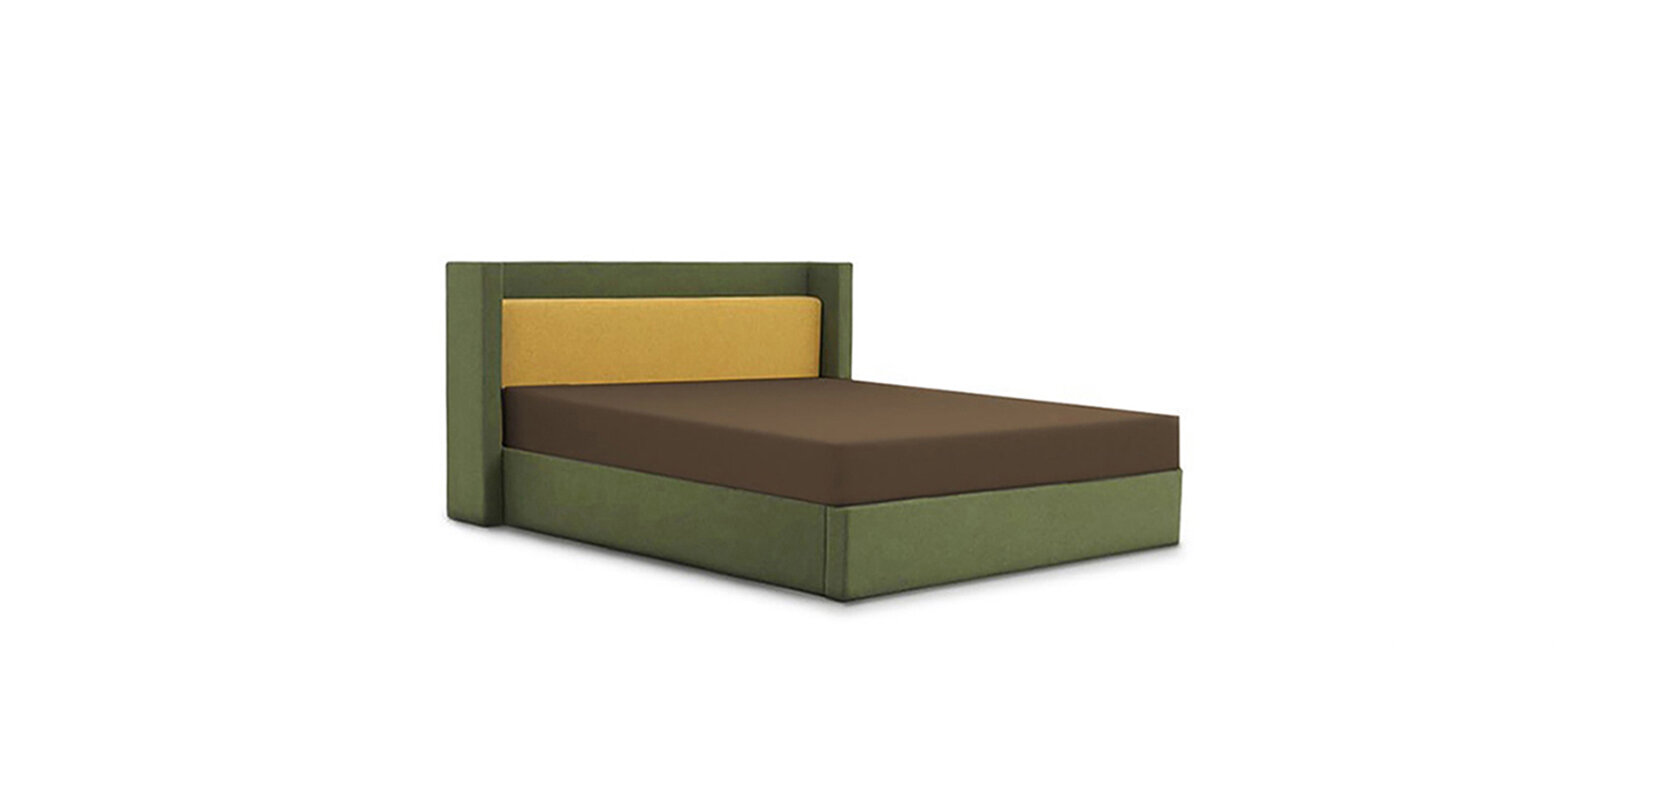 CUBE BED BRAND:  FNJI  WEB:   www.fnji.com  Cube Bed represents a simple, lively, but comfortable lifestyle. Cube Bed's Mixed colors design and sufficient storage space can meet the needs of dailylife. The colorful appearance shows the Young vitality.